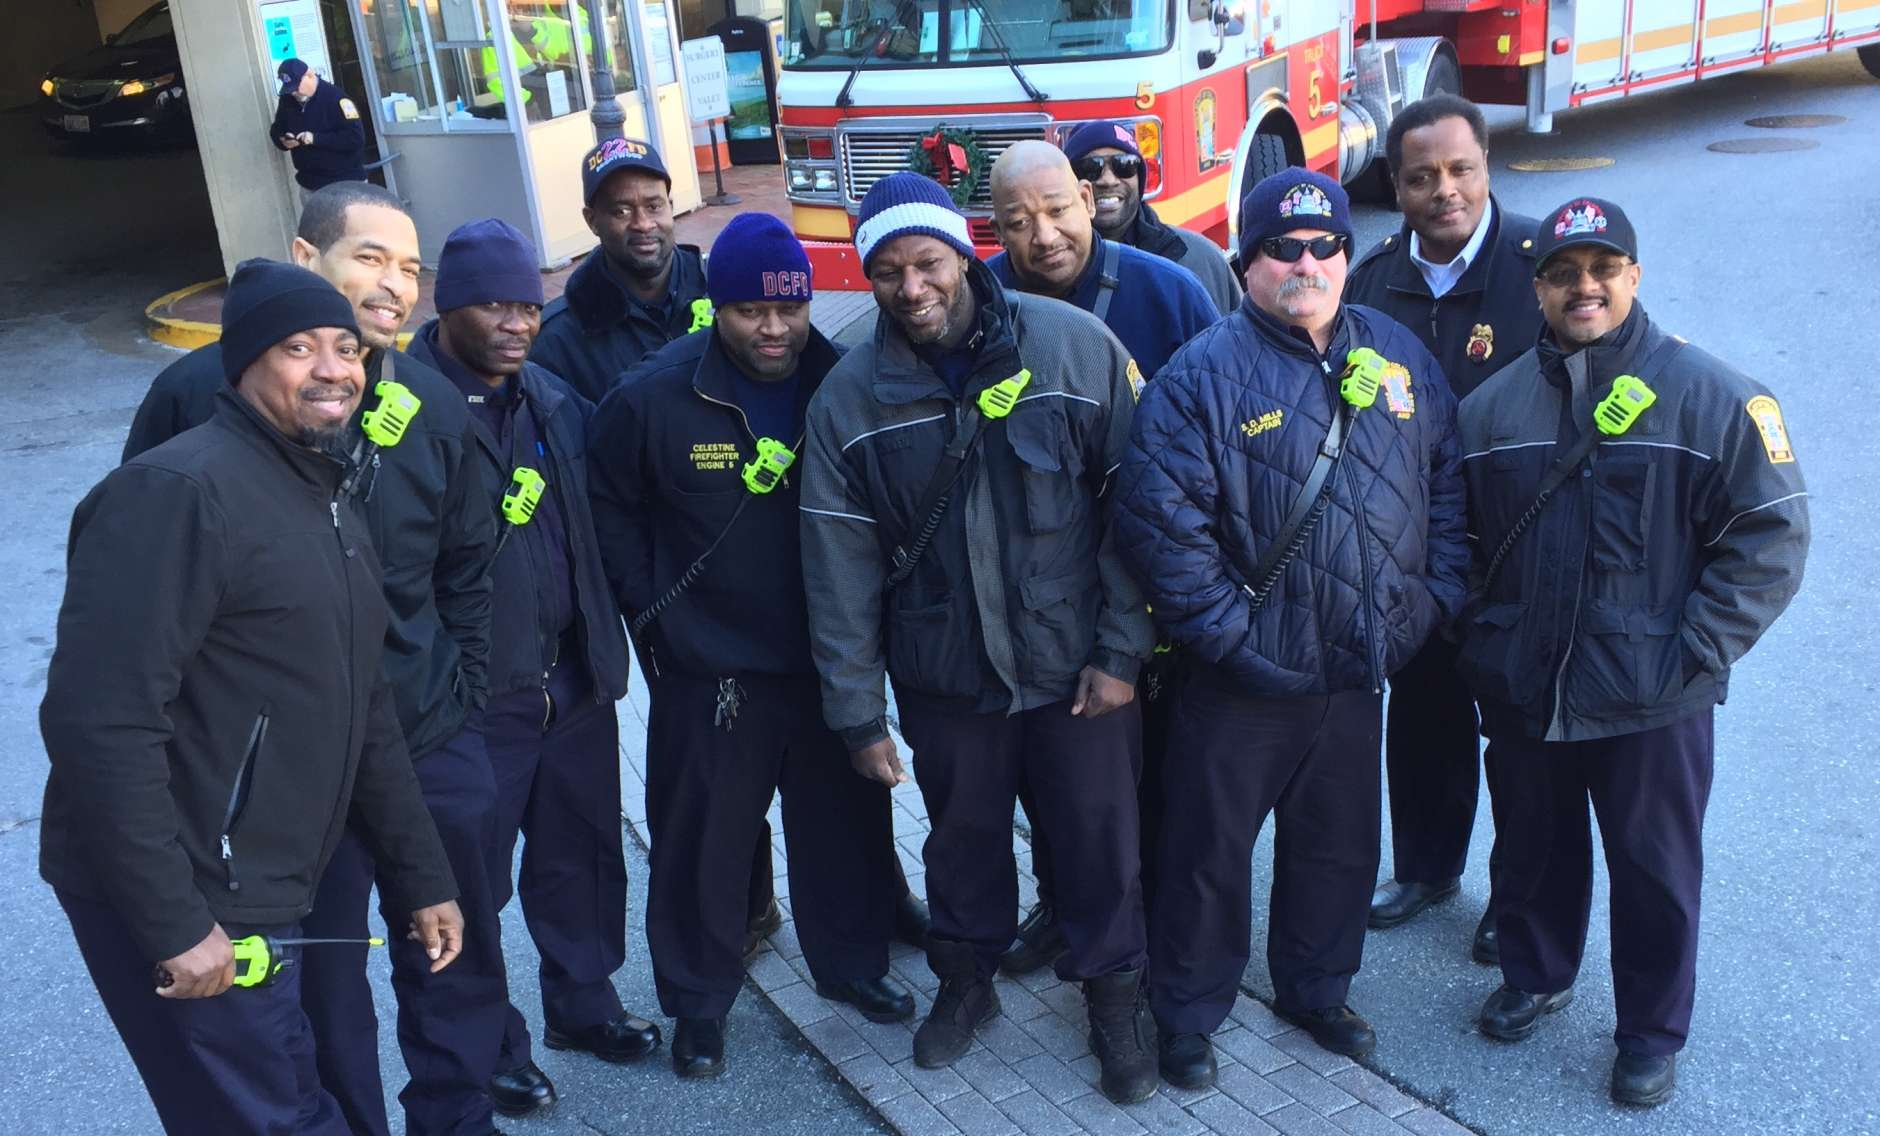 """Members of Engine 5 and Truck 5 are from fire houses in Palisades and Georgetown. """"We engage with kids a lot,"""" said Battalion Chief David Mclain. """"It makes our day."""" (WTOP/Kristi King)"""